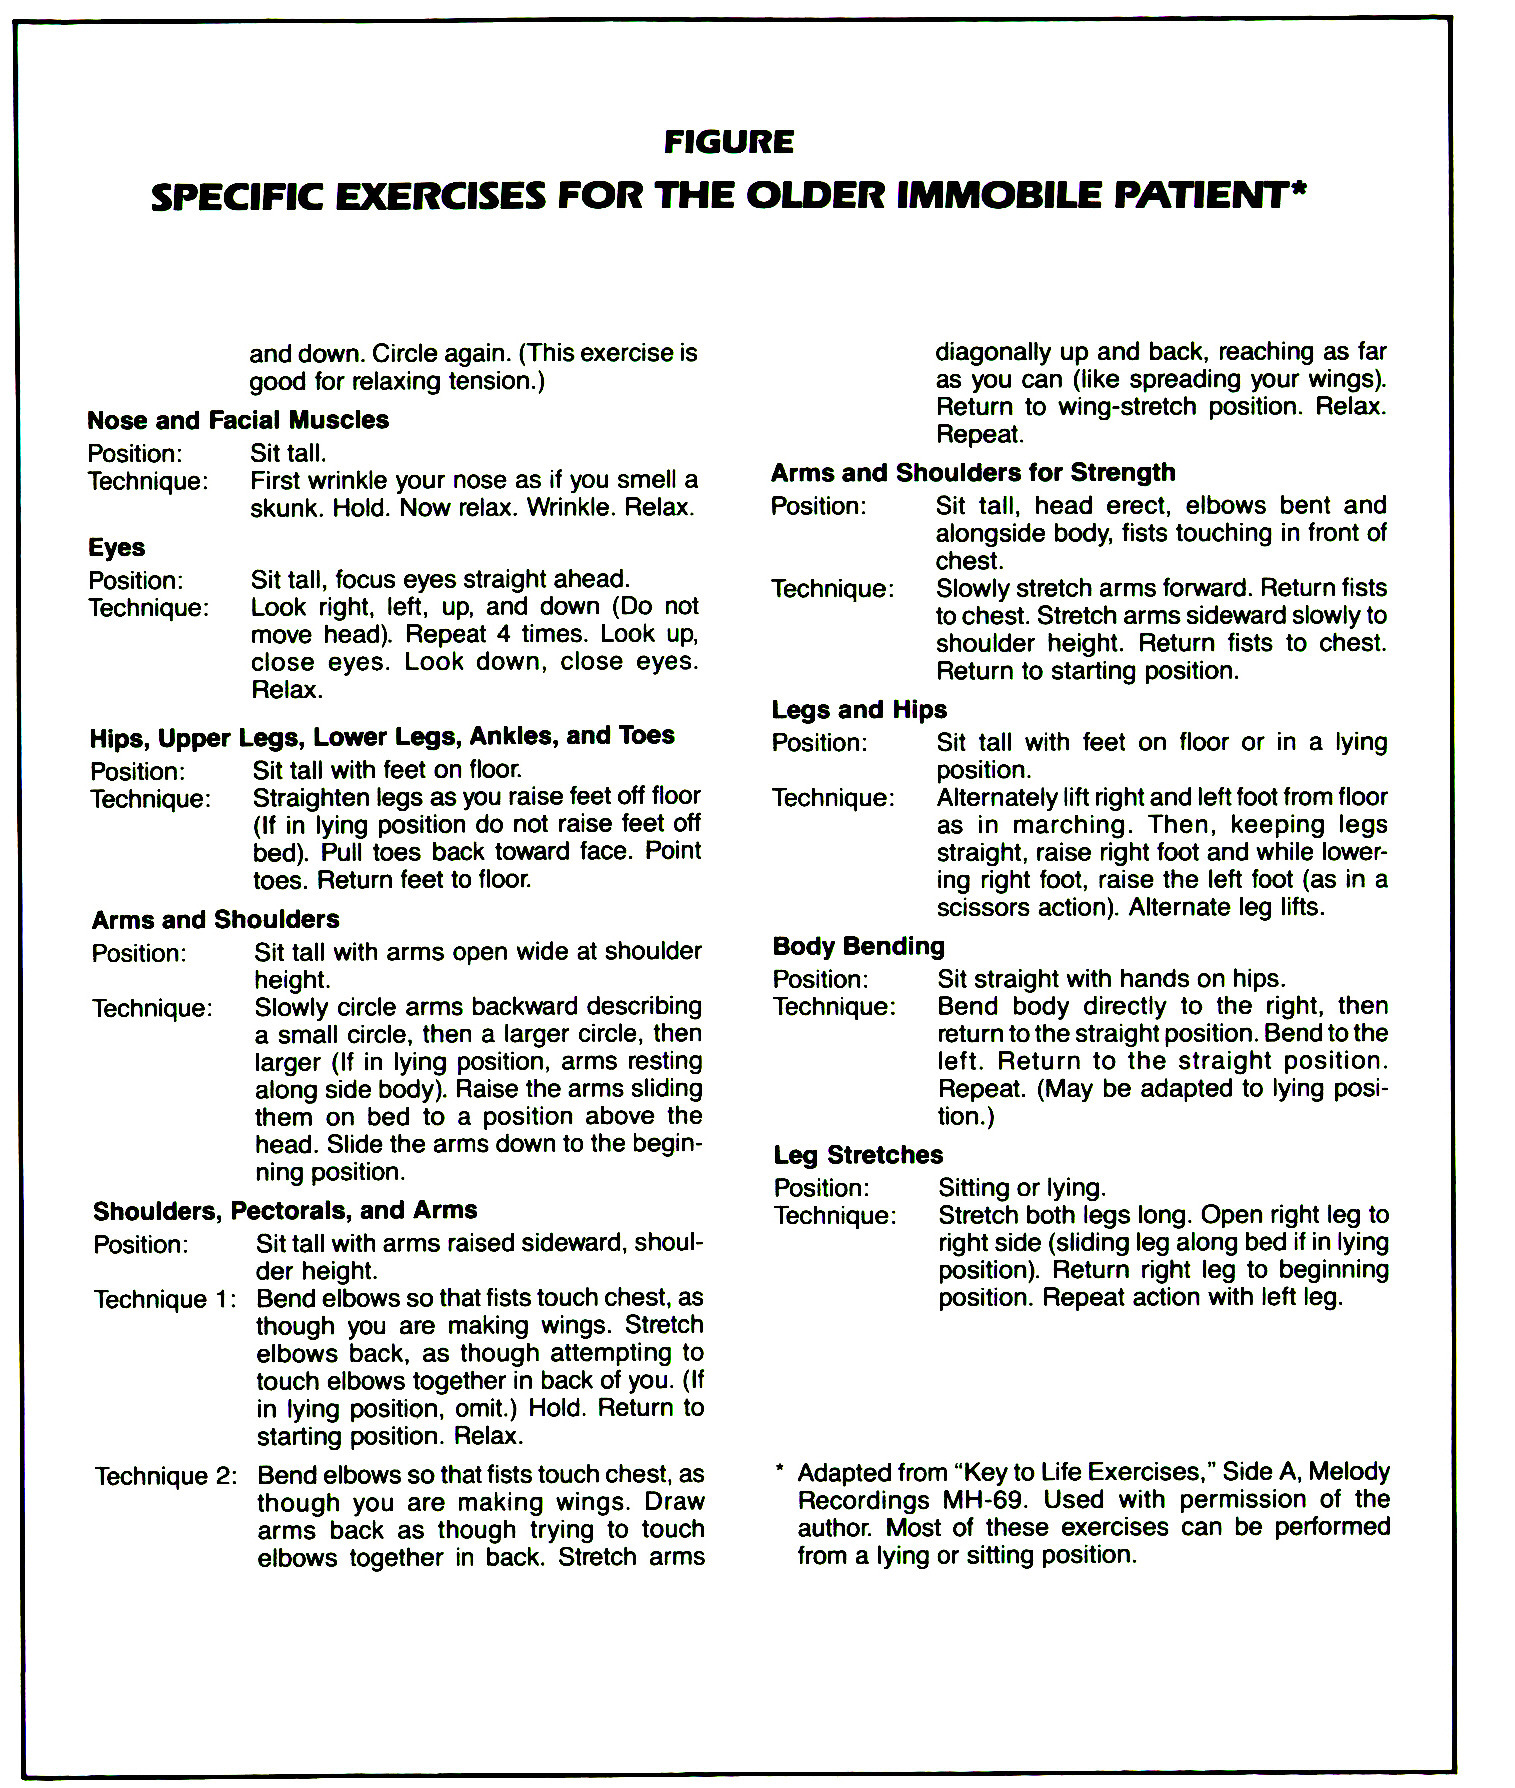 FIGURESPECIFIC EXERCISES FOR THE OLDER IMMOBILE PATIENT*